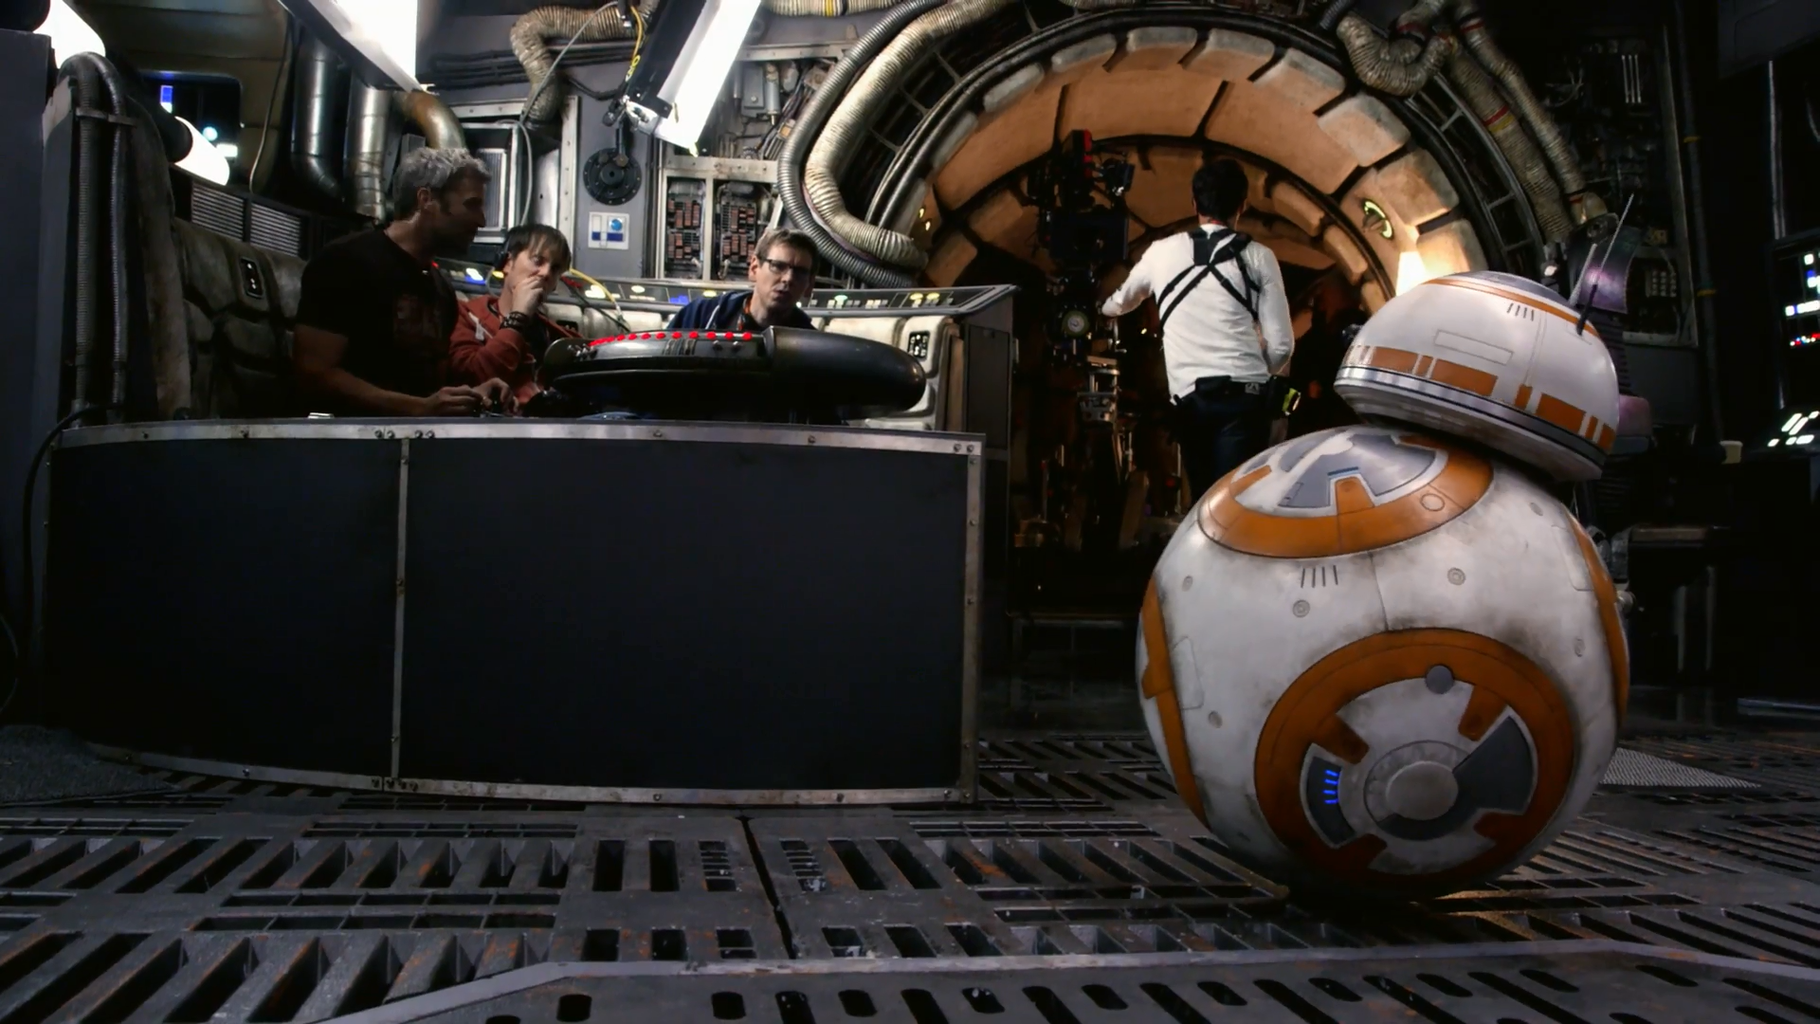 The Science Behind BB8's Magic!